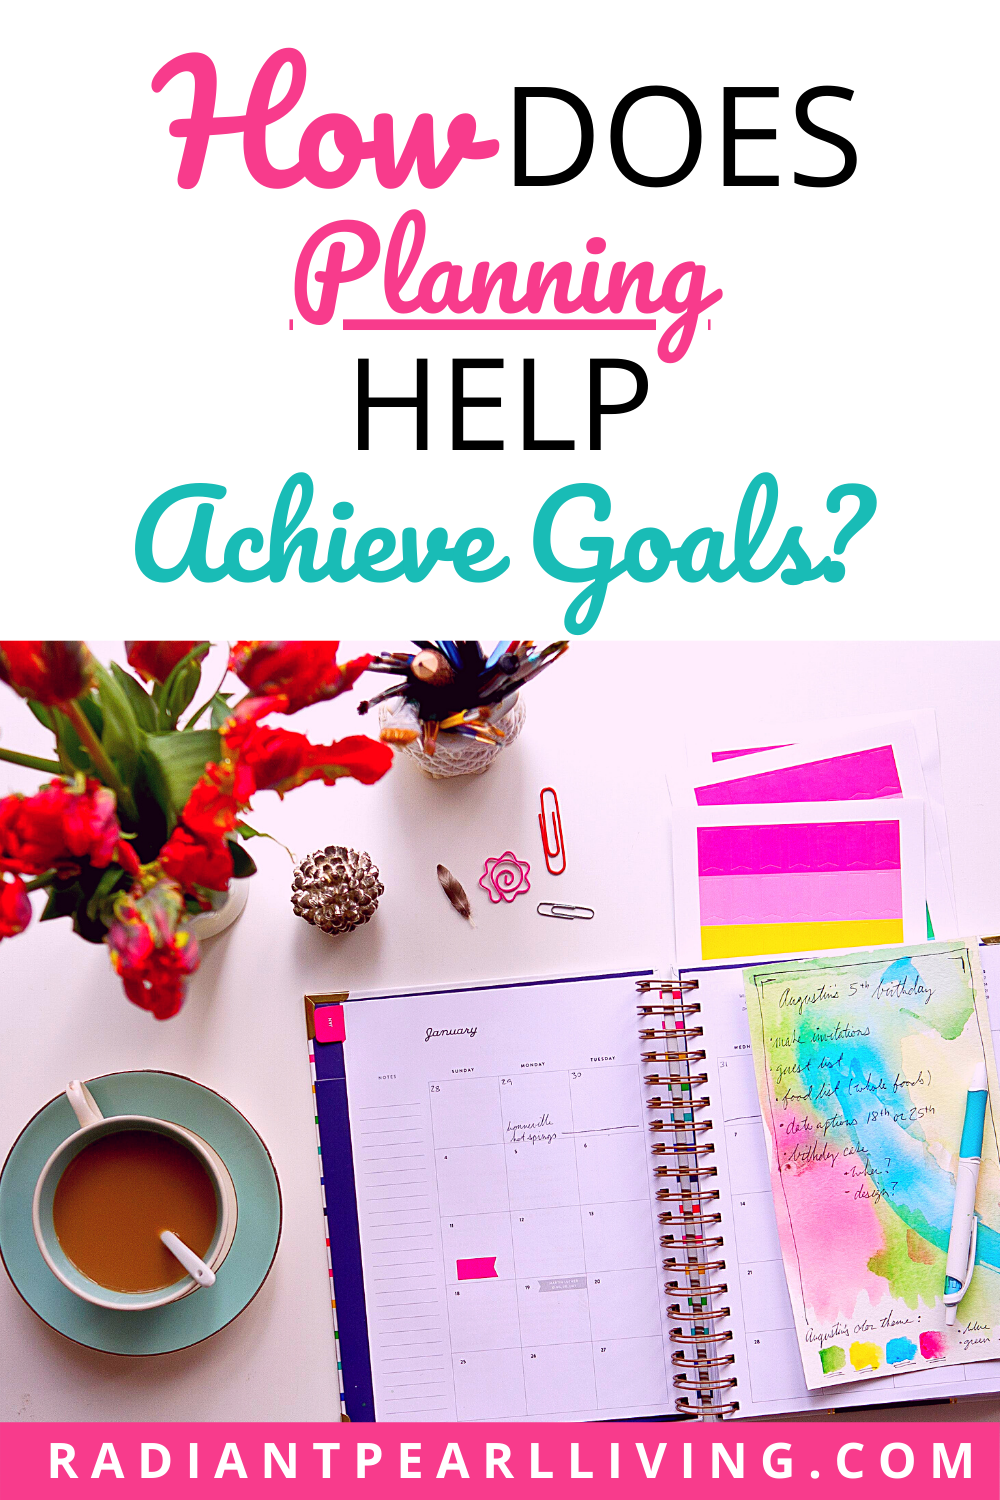 Can planning really help you achieve your goals? Certainly! Learn from these exceptional content creators and tips. See 12 ways planning can help you be exceedingly or unexpectedly excellent or great. This simple method will make you achieve your goals in less time.